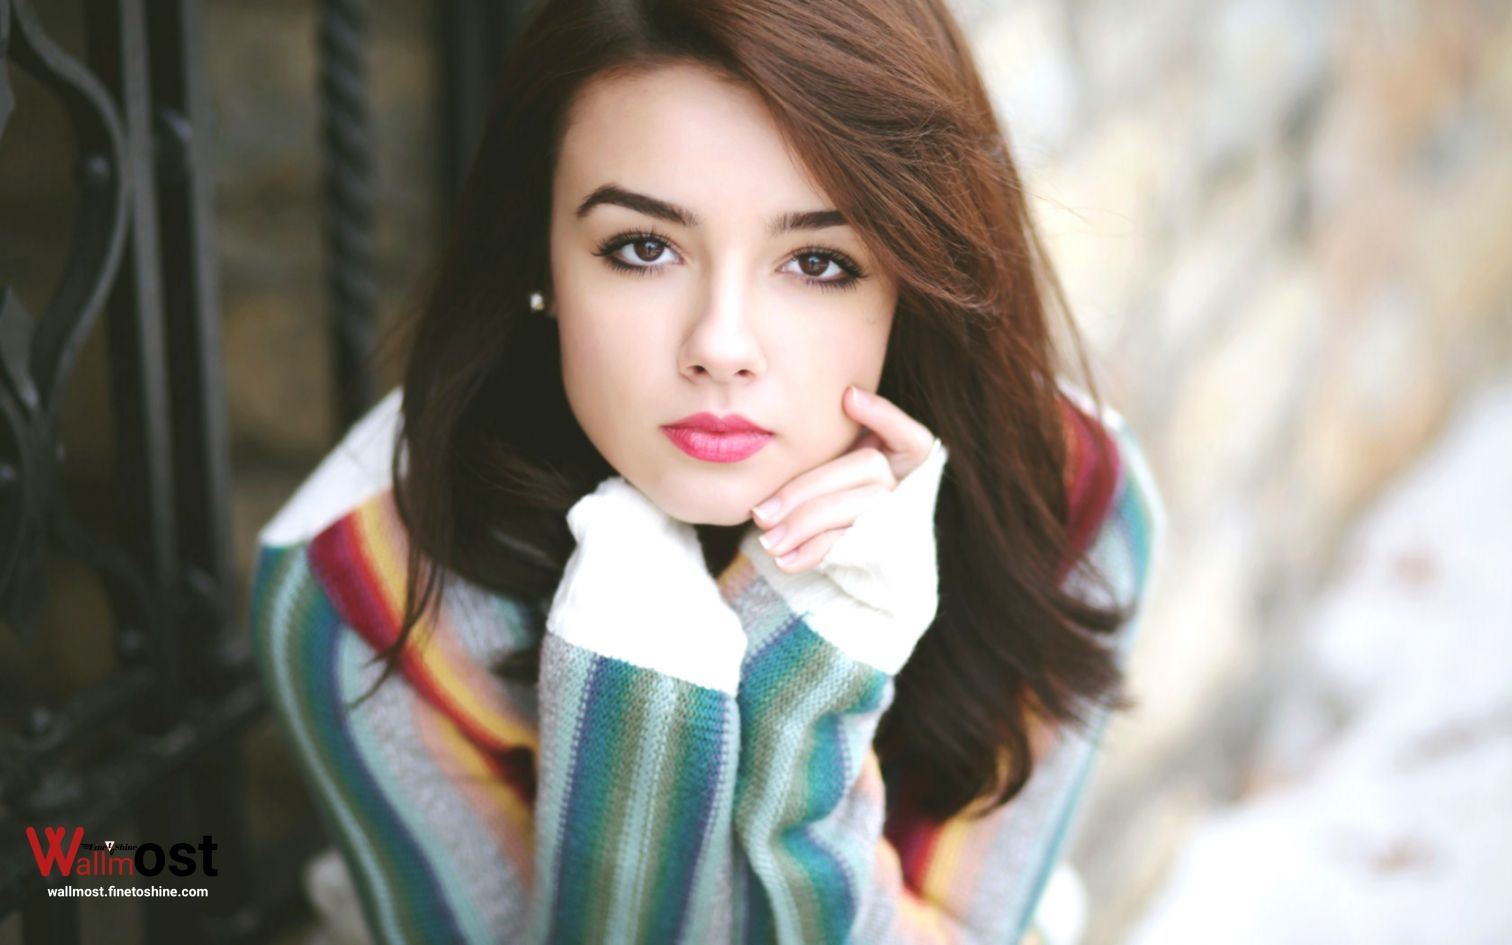 Beautiful Girl Wallpapers New Photos Images Pictures Finetoshine